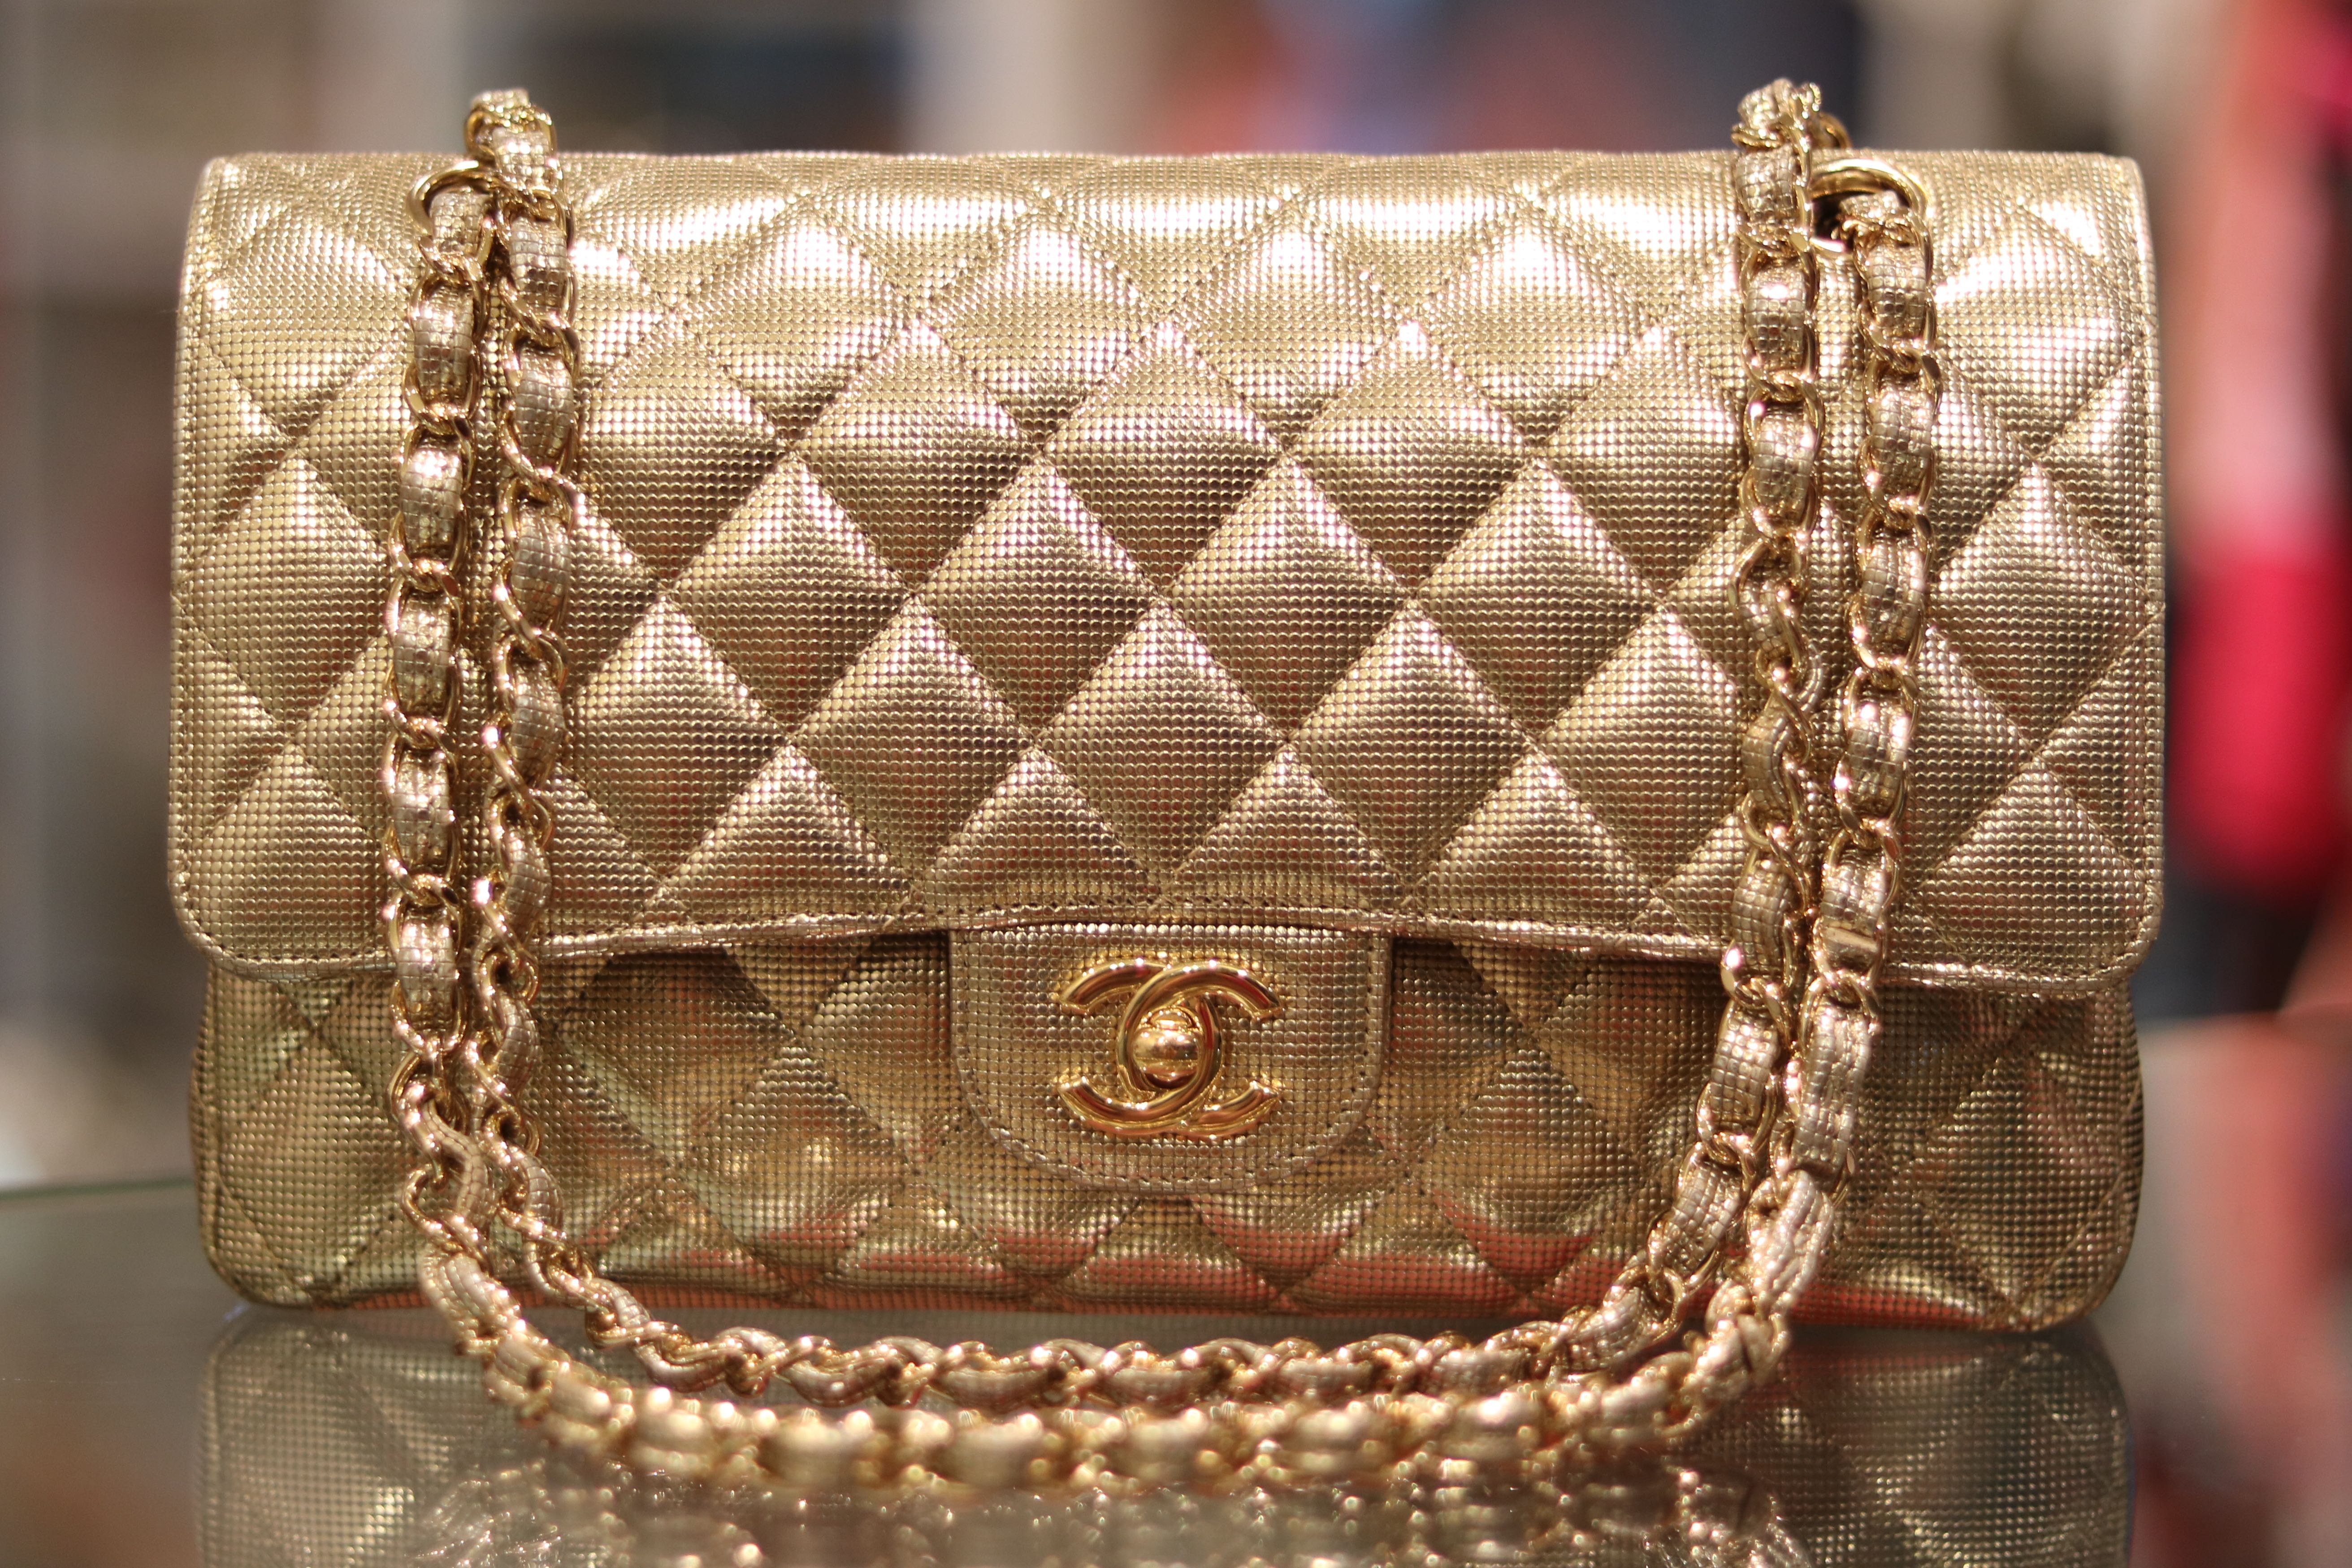 0957f47c3a49 Chanel Classic Medium Flap Bag Pixel Effect Gold, Luxury, Bags & Wallets,  Handbags on Carousell